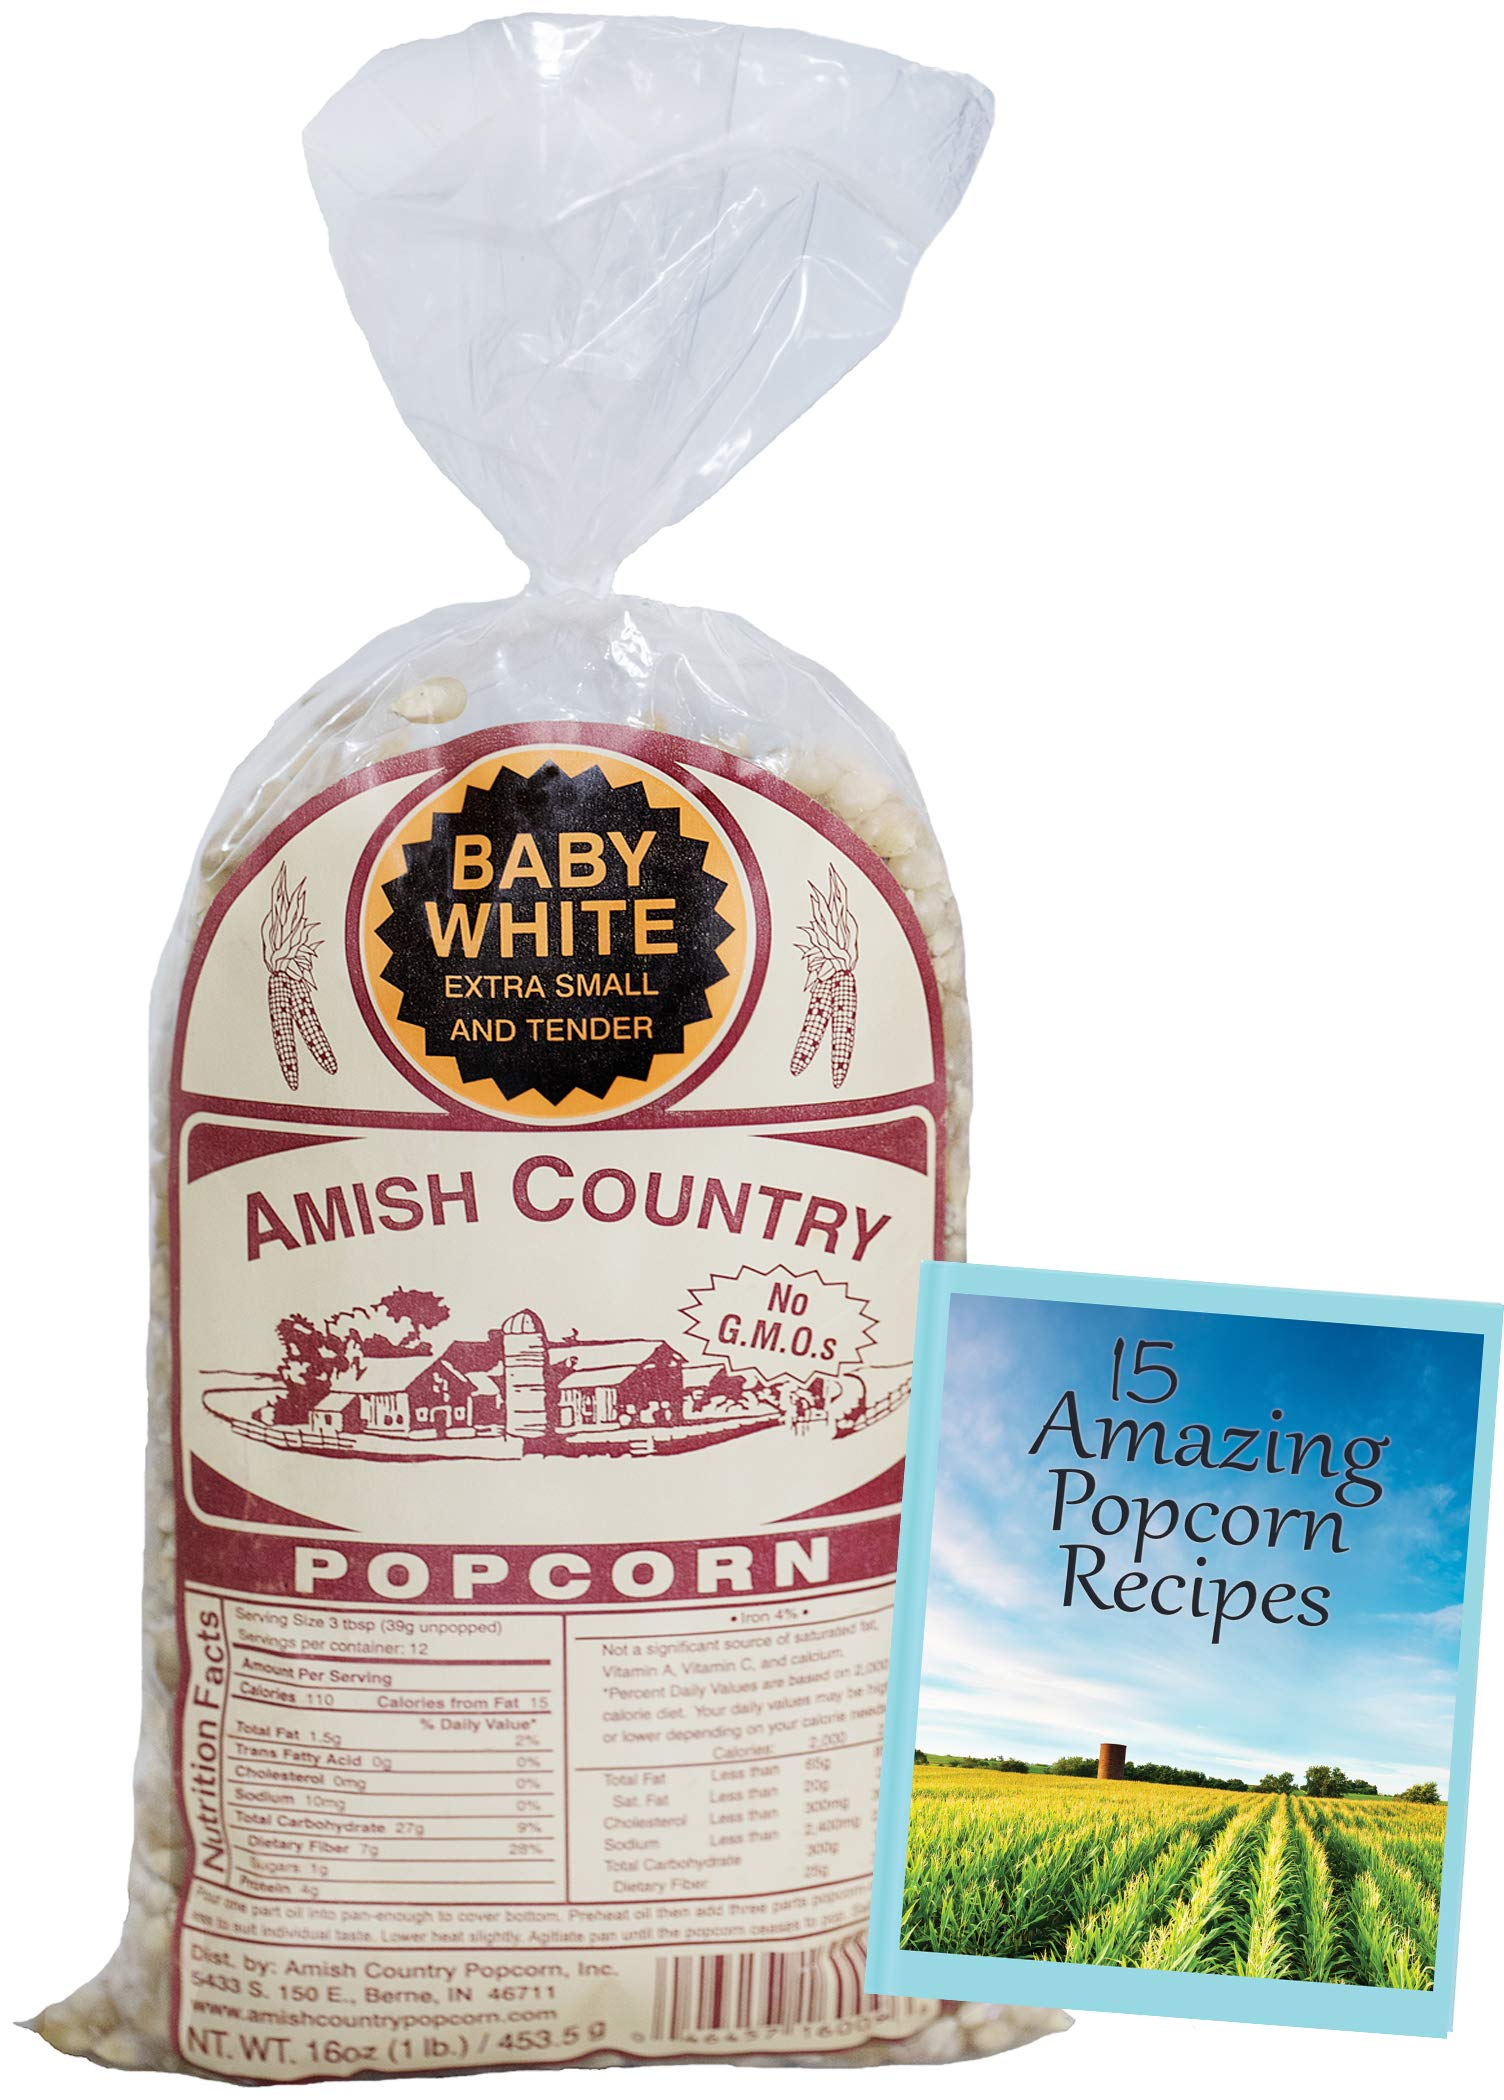 Amish Country Popcorn - Baby White (1 Pound Bag) Small & Tender Popcorn - Old Fashioned And Delicious, with Recipe Guide by Amish Country Popcorn (Image #2)